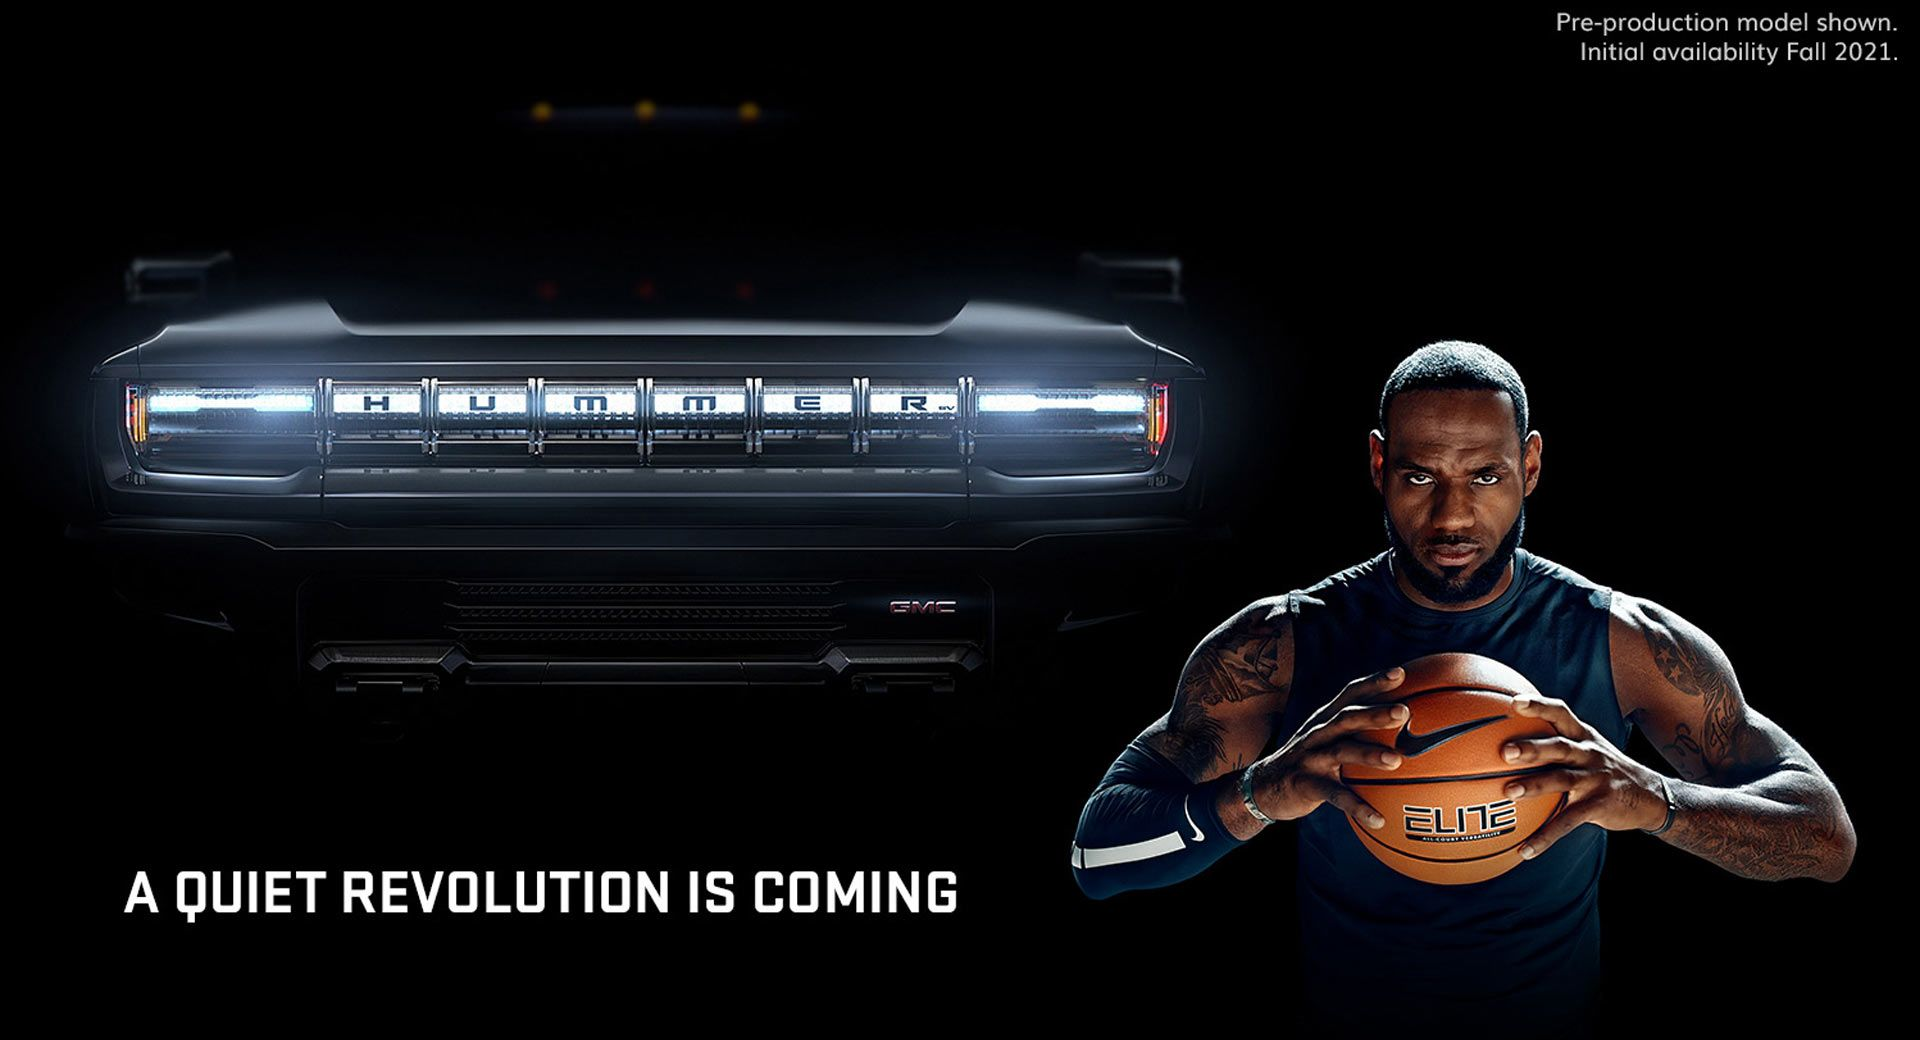 Hummer Is Back With A New Super Bowl Commercial Featuring Lebron James Commercials Gmc Hummer Hummervideos Superbowl Truck In 2020 Hummer Super Bowl Lebron James